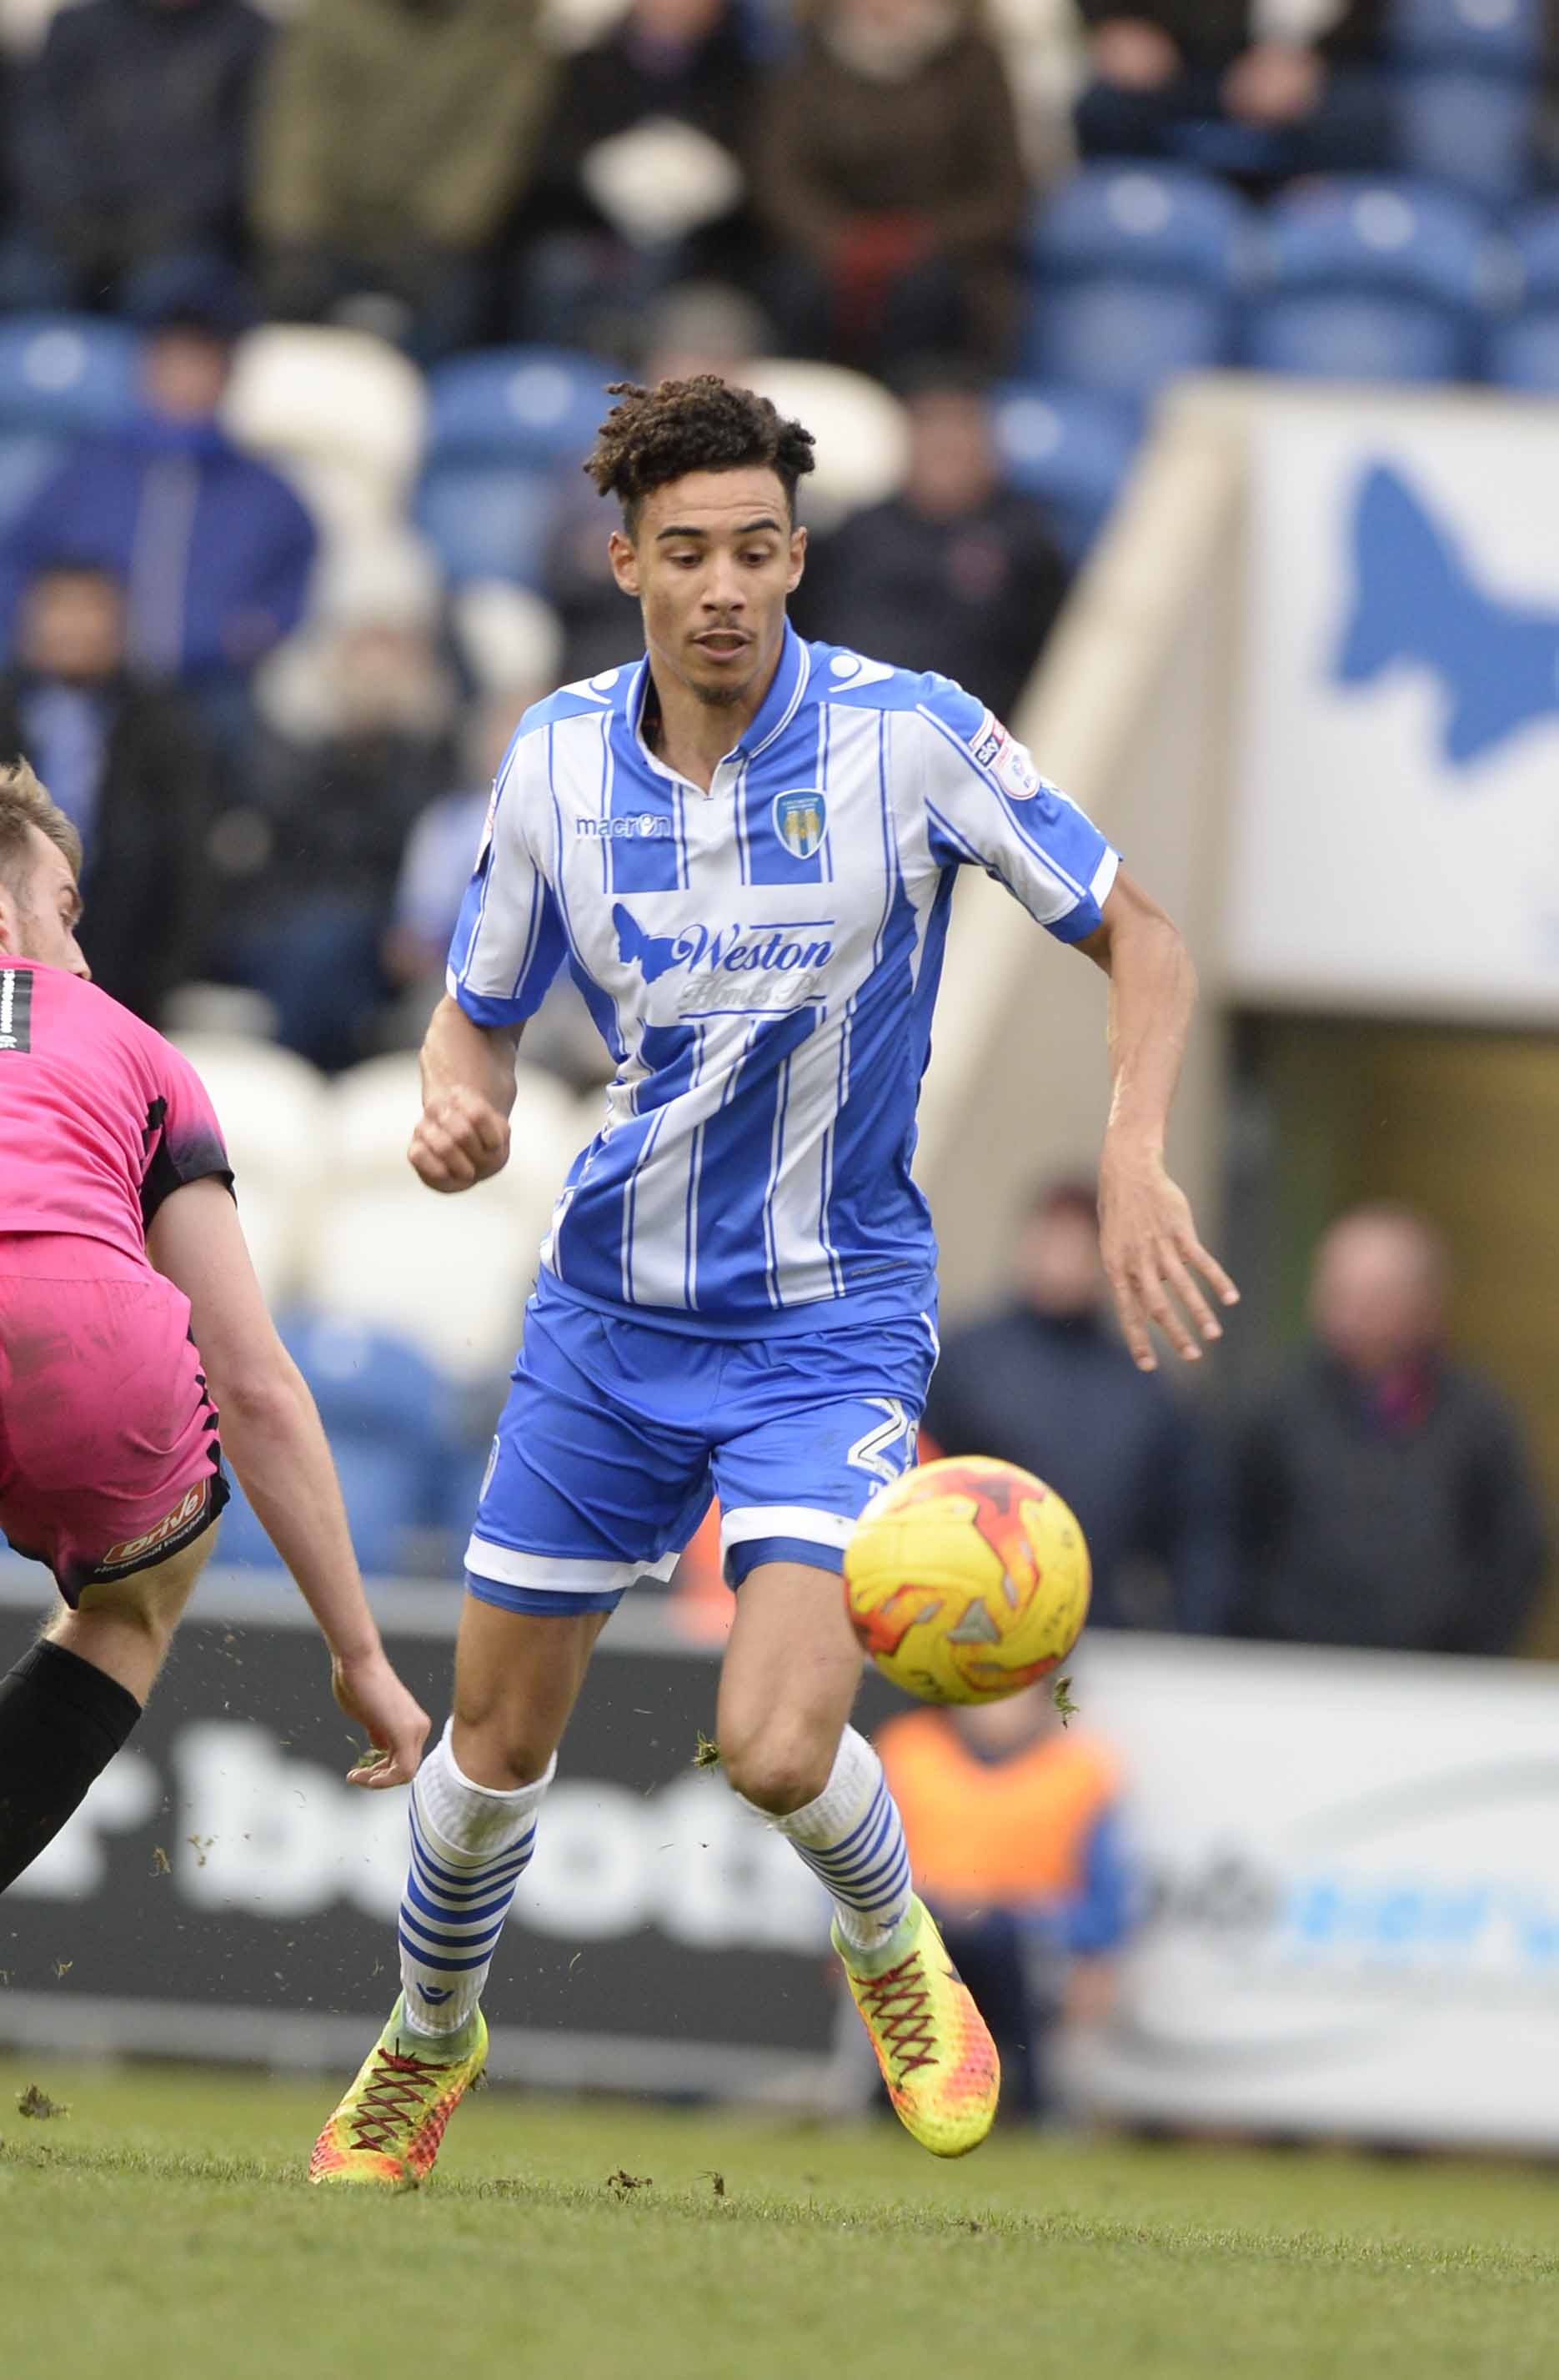 Back in the fold - Kurtis Guthrie has been training with Colchester United's first-team squad ahead of their home game with Exeter City